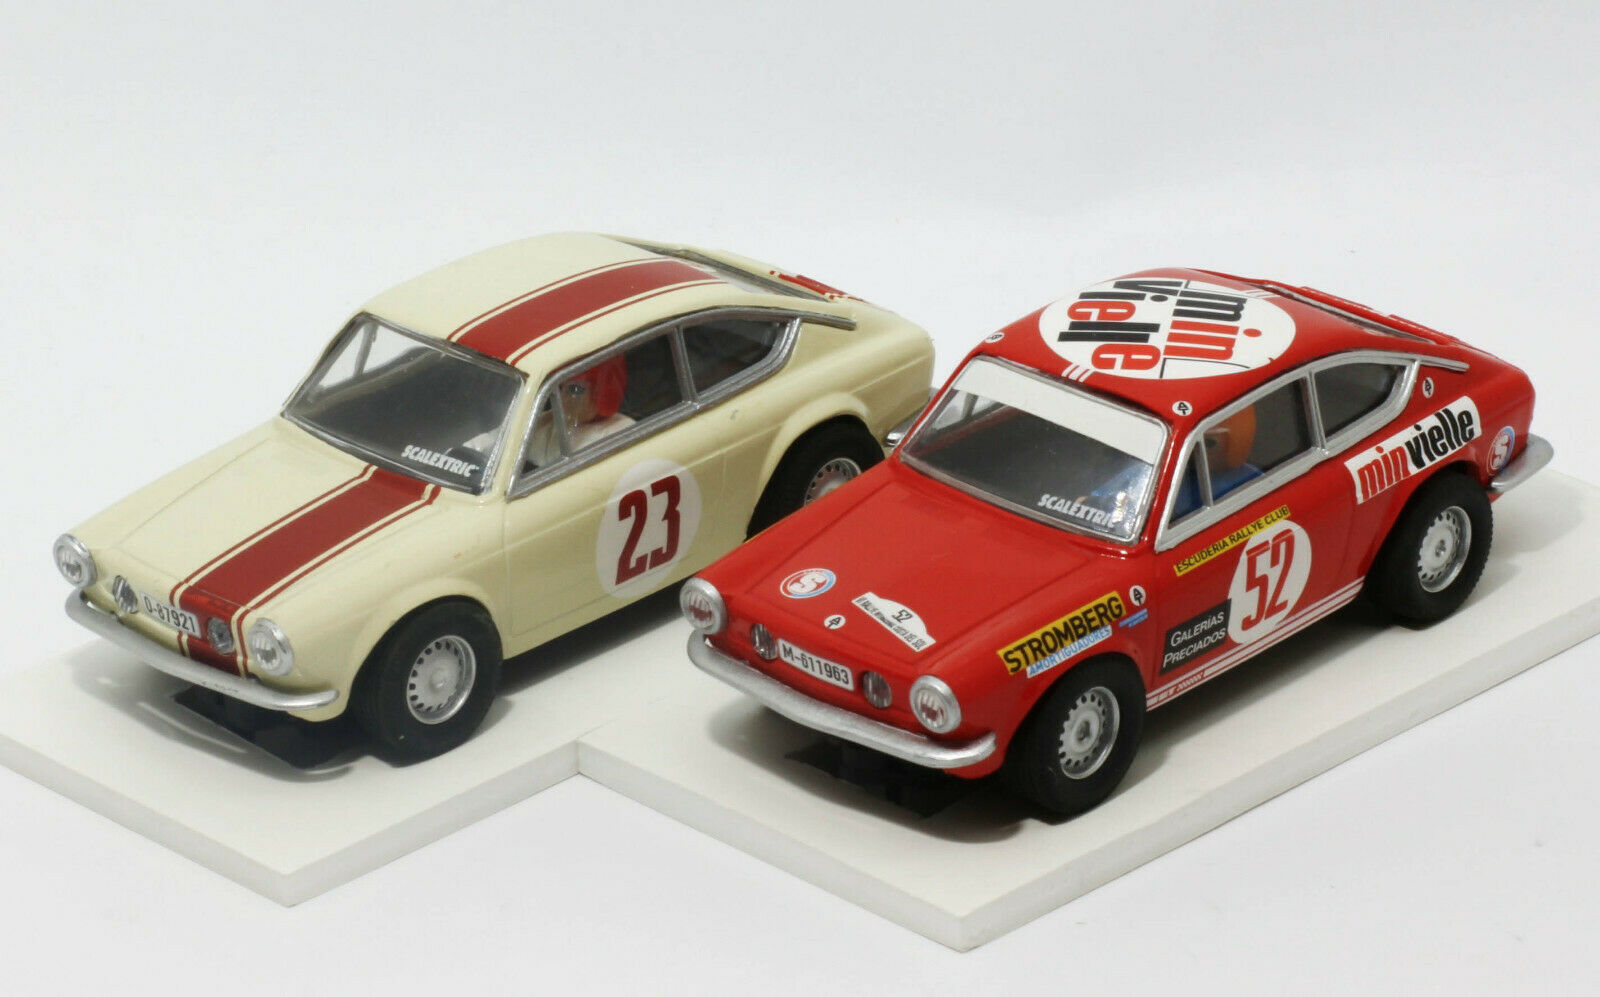 2 x Seat 850 Coupe Altaya (Scalextric)